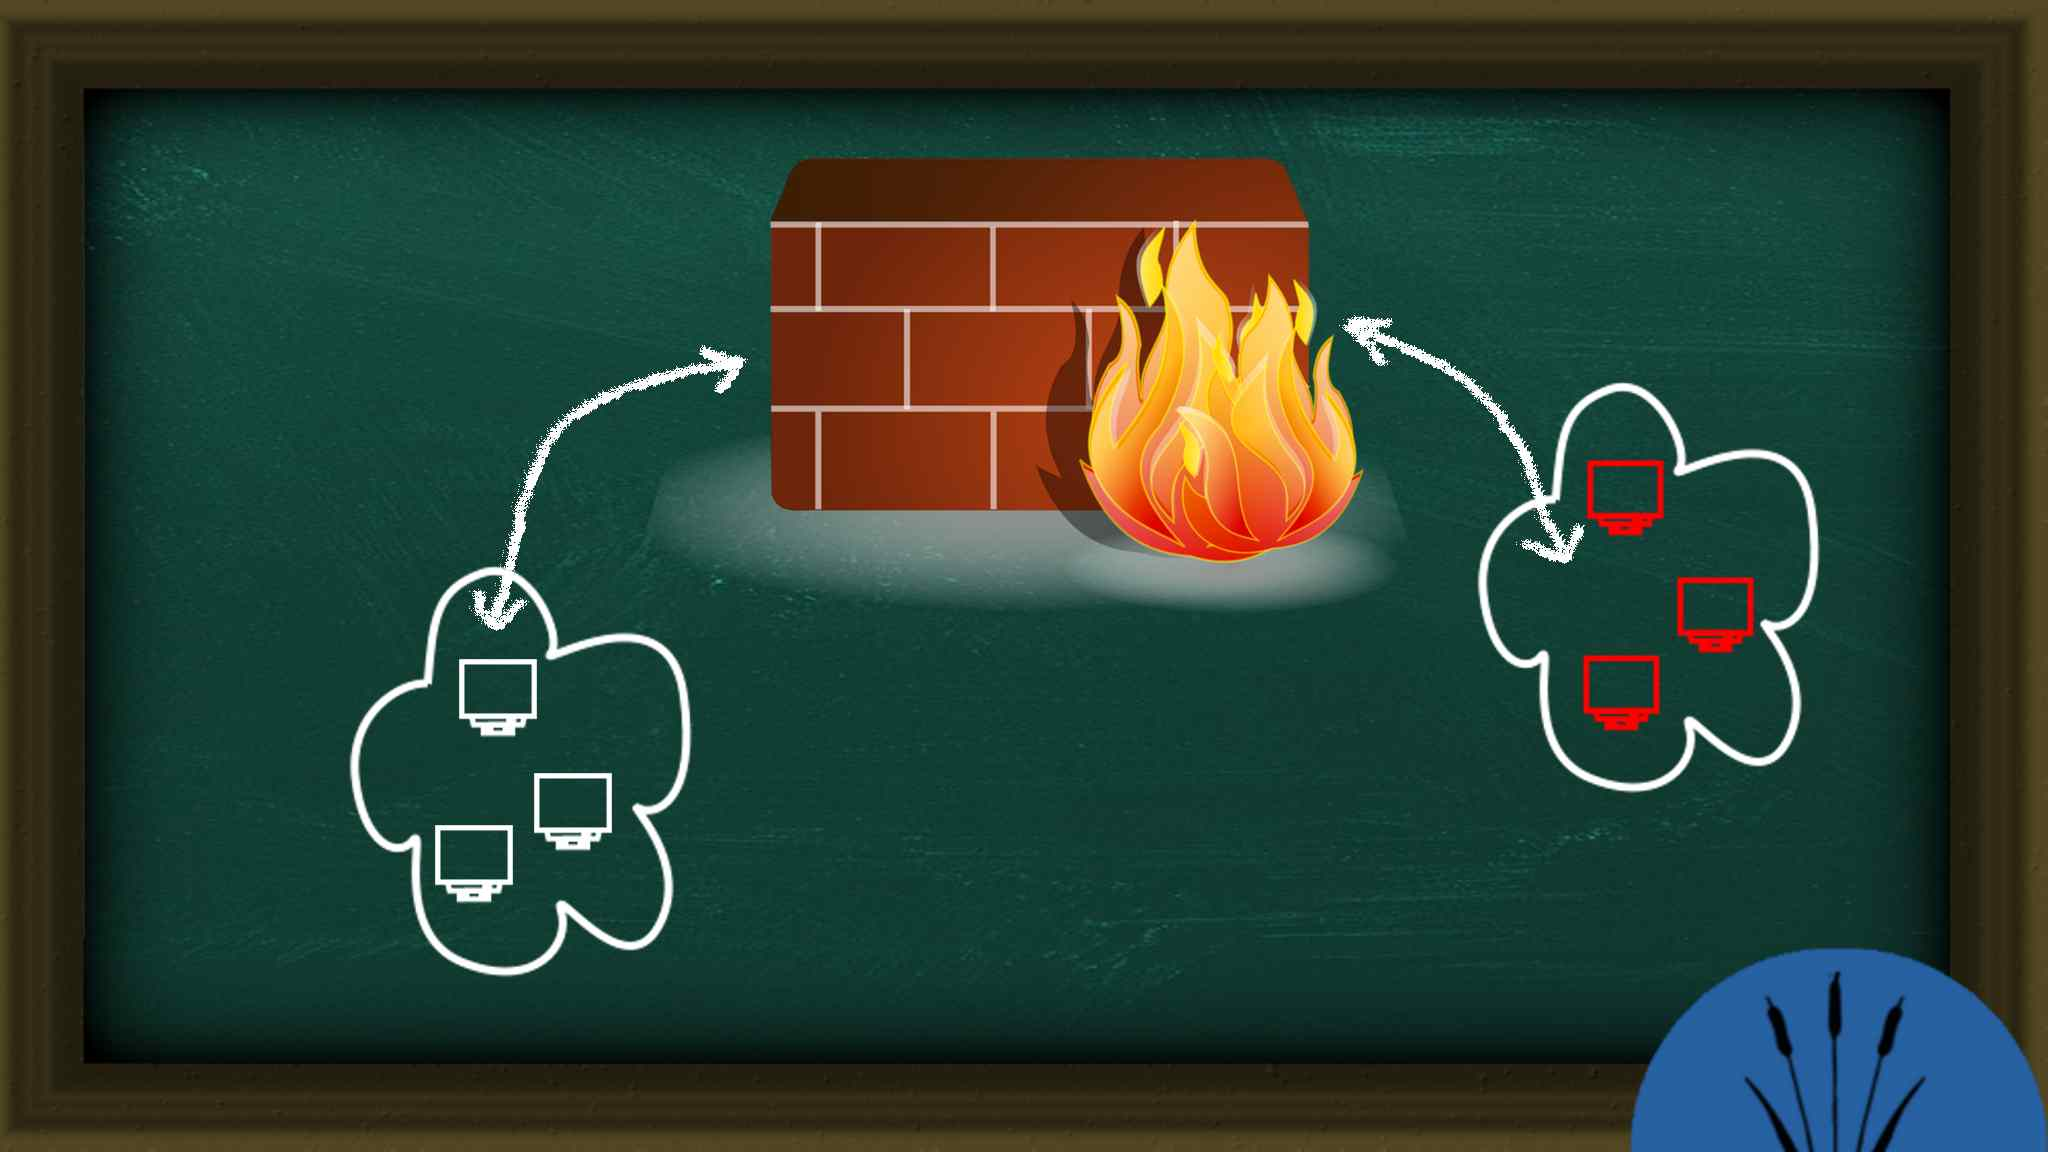 iptables course curso udemy firewall firewalling hacking network security seguridad redes tcpip tcp ip lan Internet protocol port